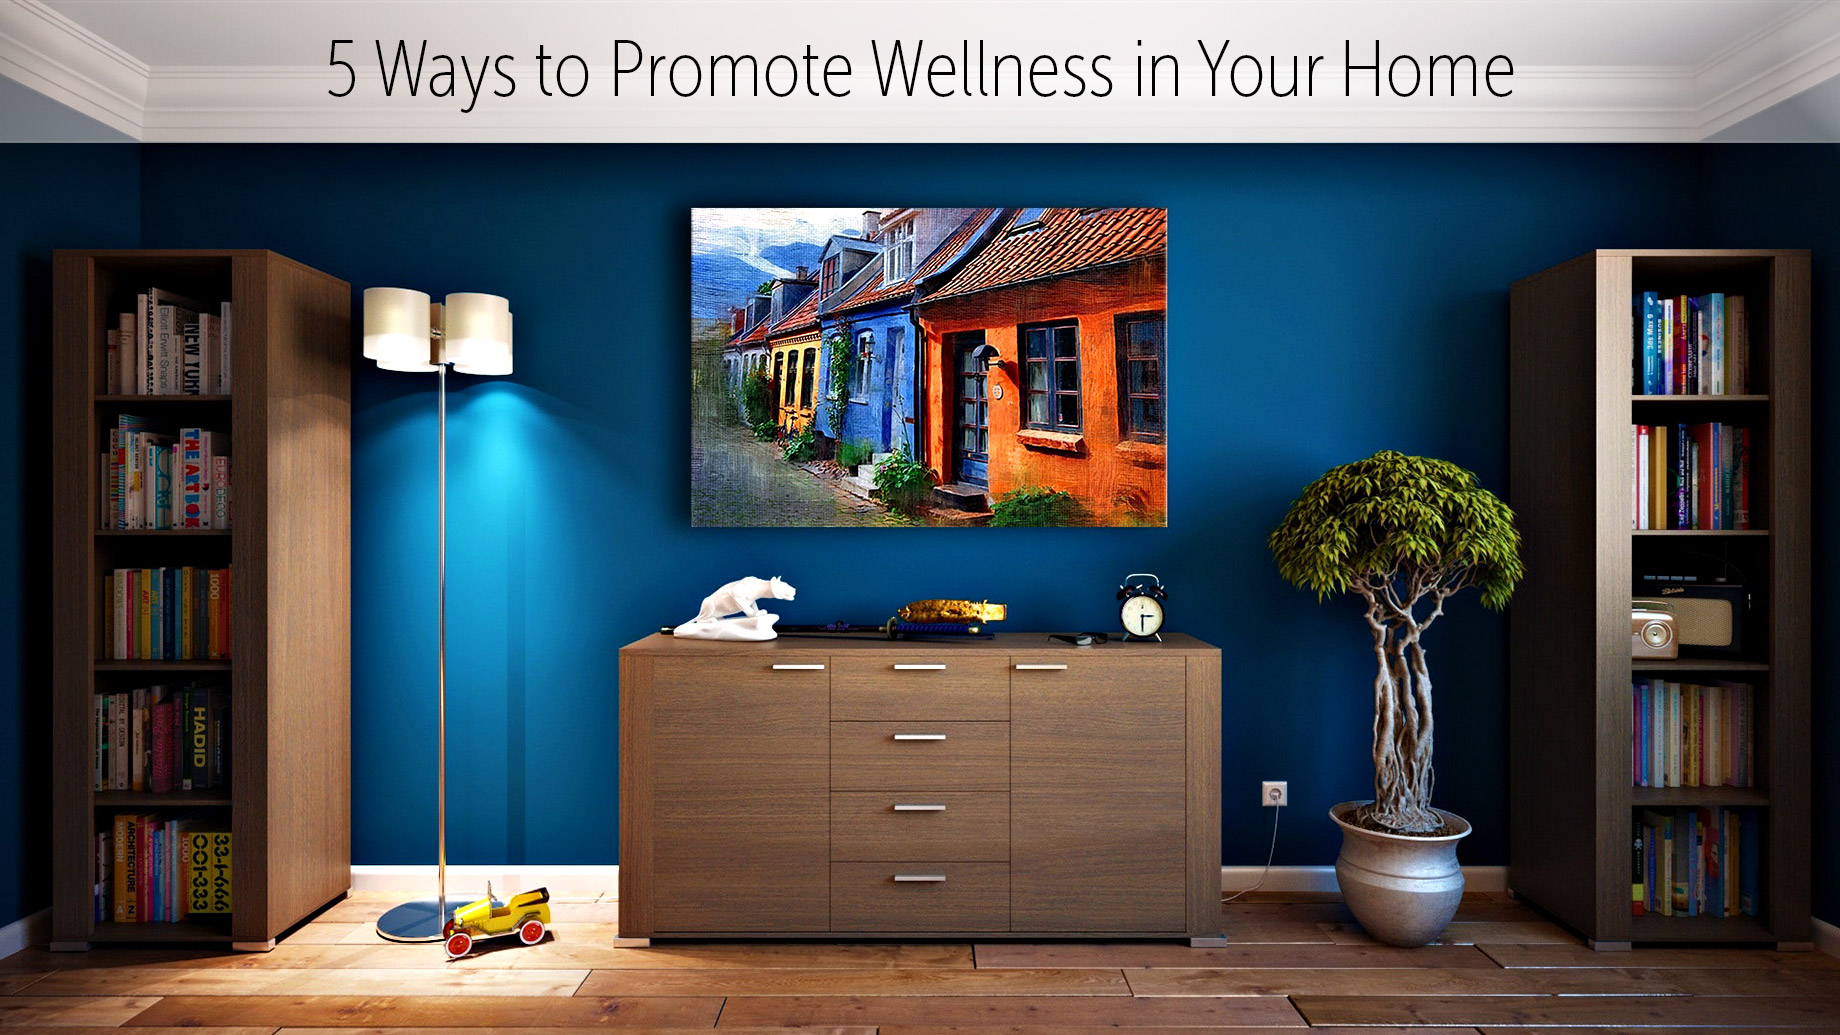 Luxury Living - 5 Ways to Promote Wellness in Your Home